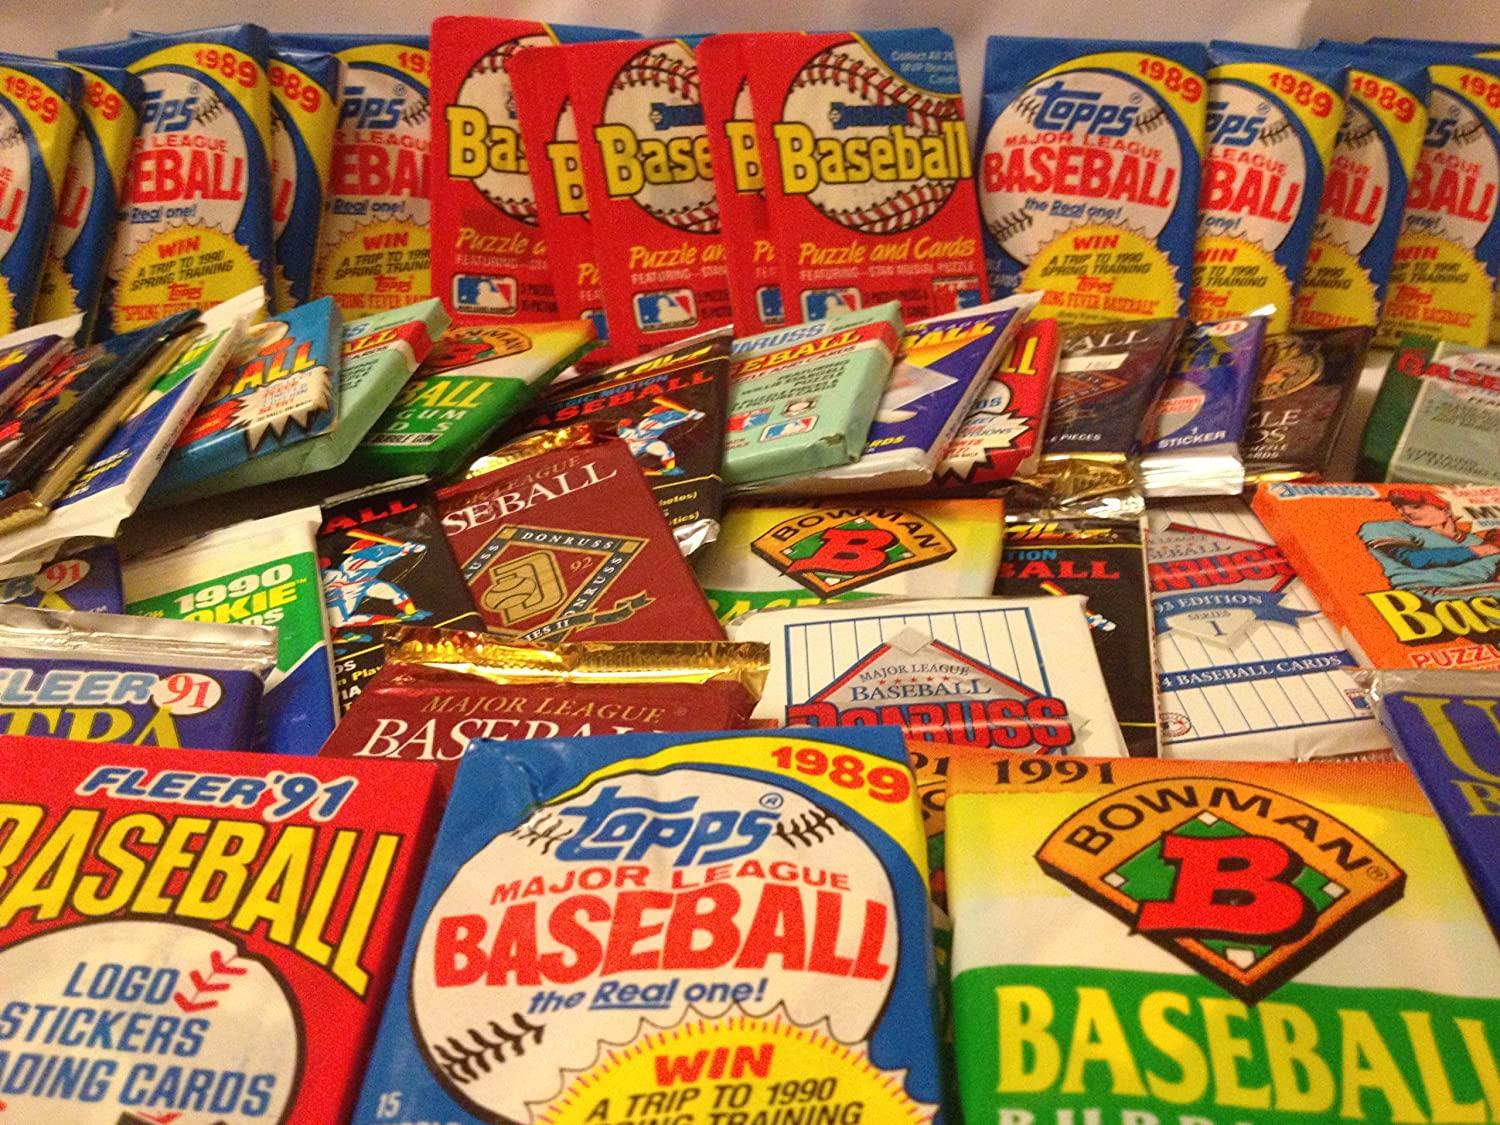 100 Vintage Baseball Cards bei alt Sealed Wax Packs - Perfect für neu Collectors